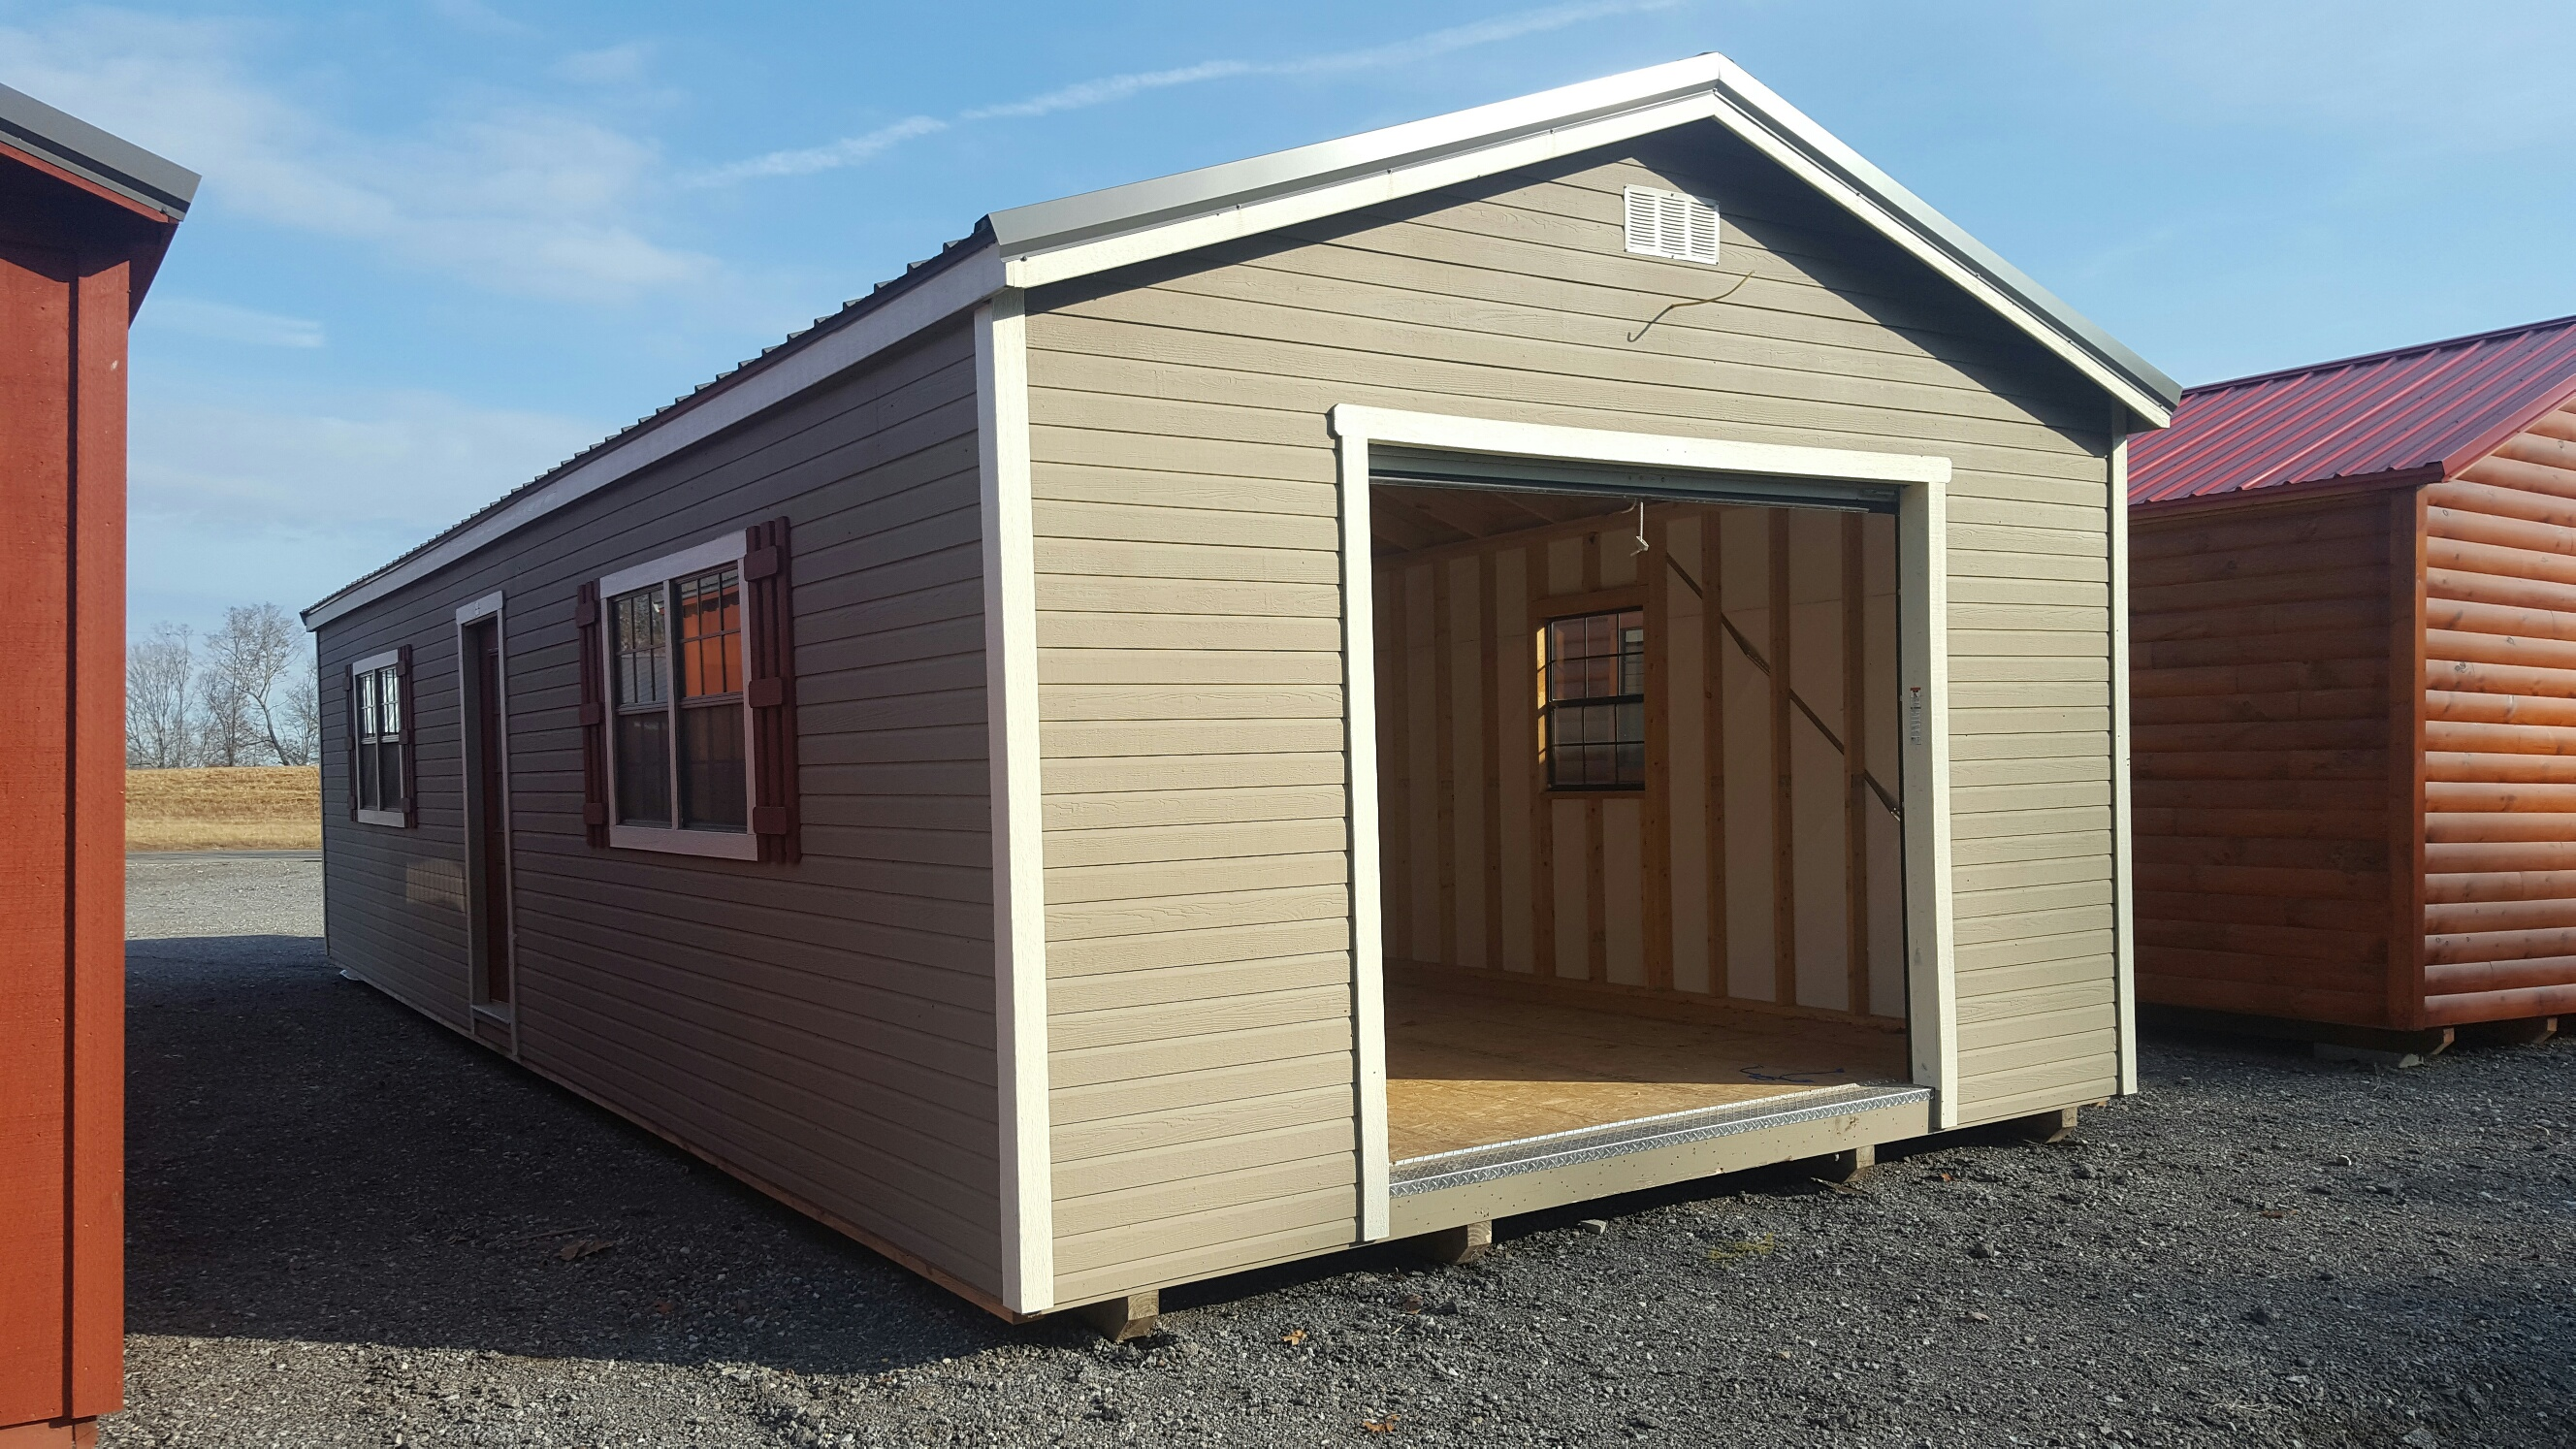 Storage buildings near best storage images on for Storage sheds for sale near me